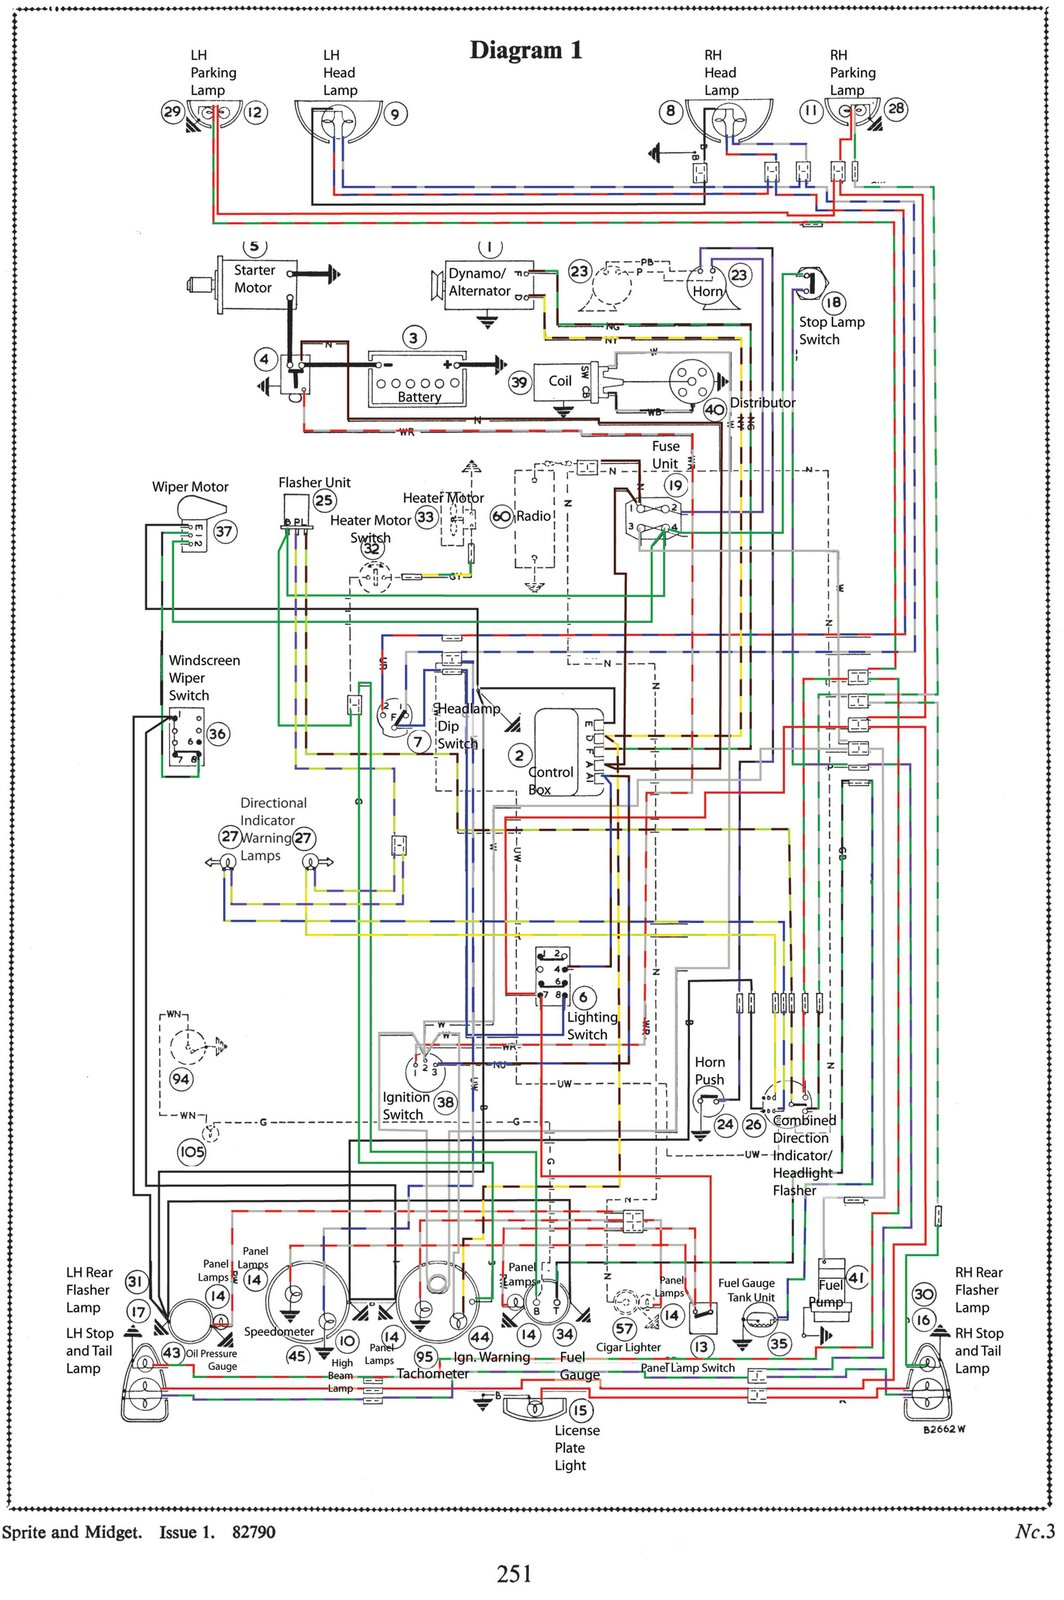 1975 mgb fuse box search for wiring diagrams u2022 rh stephenpoon co 2002 ford ranger fuse chart electrical fuse [ 1064 x 1600 Pixel ]